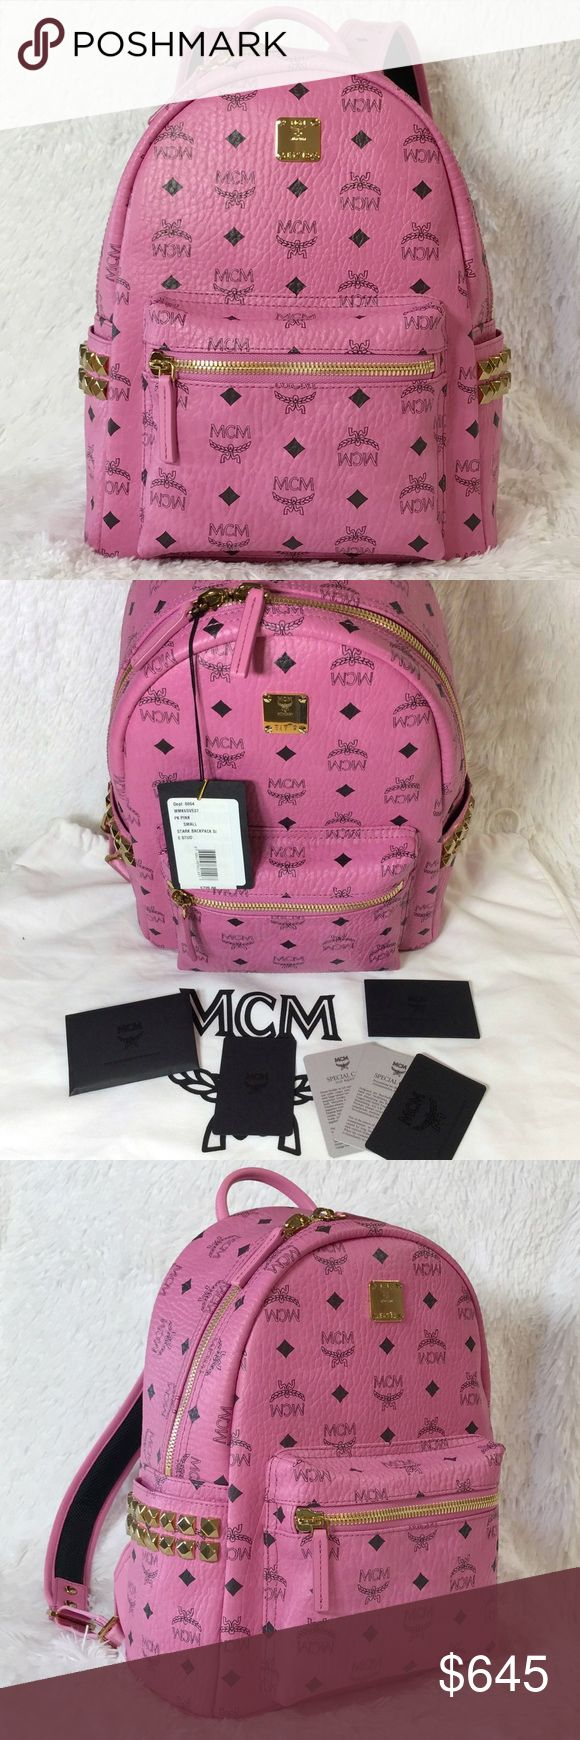 NEW MCM SMALL STUD VISETOS BACKPACK Authentic. Made in Italy. Brand new with tags. This backpack will come with care card and dust bag. PLEASE NO TRADE. THE PRICE IS FIRM. The ultimate hands-free accessory, crafted from signature Visetos-print coated canvas with side stud embellishment. Single top handle Adjustable shoulder straps Front zipped pocket 2 exterior flat side pockets with stud embellishment 2 interior pockets with sleeve for tablet storage Zip-around closure Faux nappa lining…